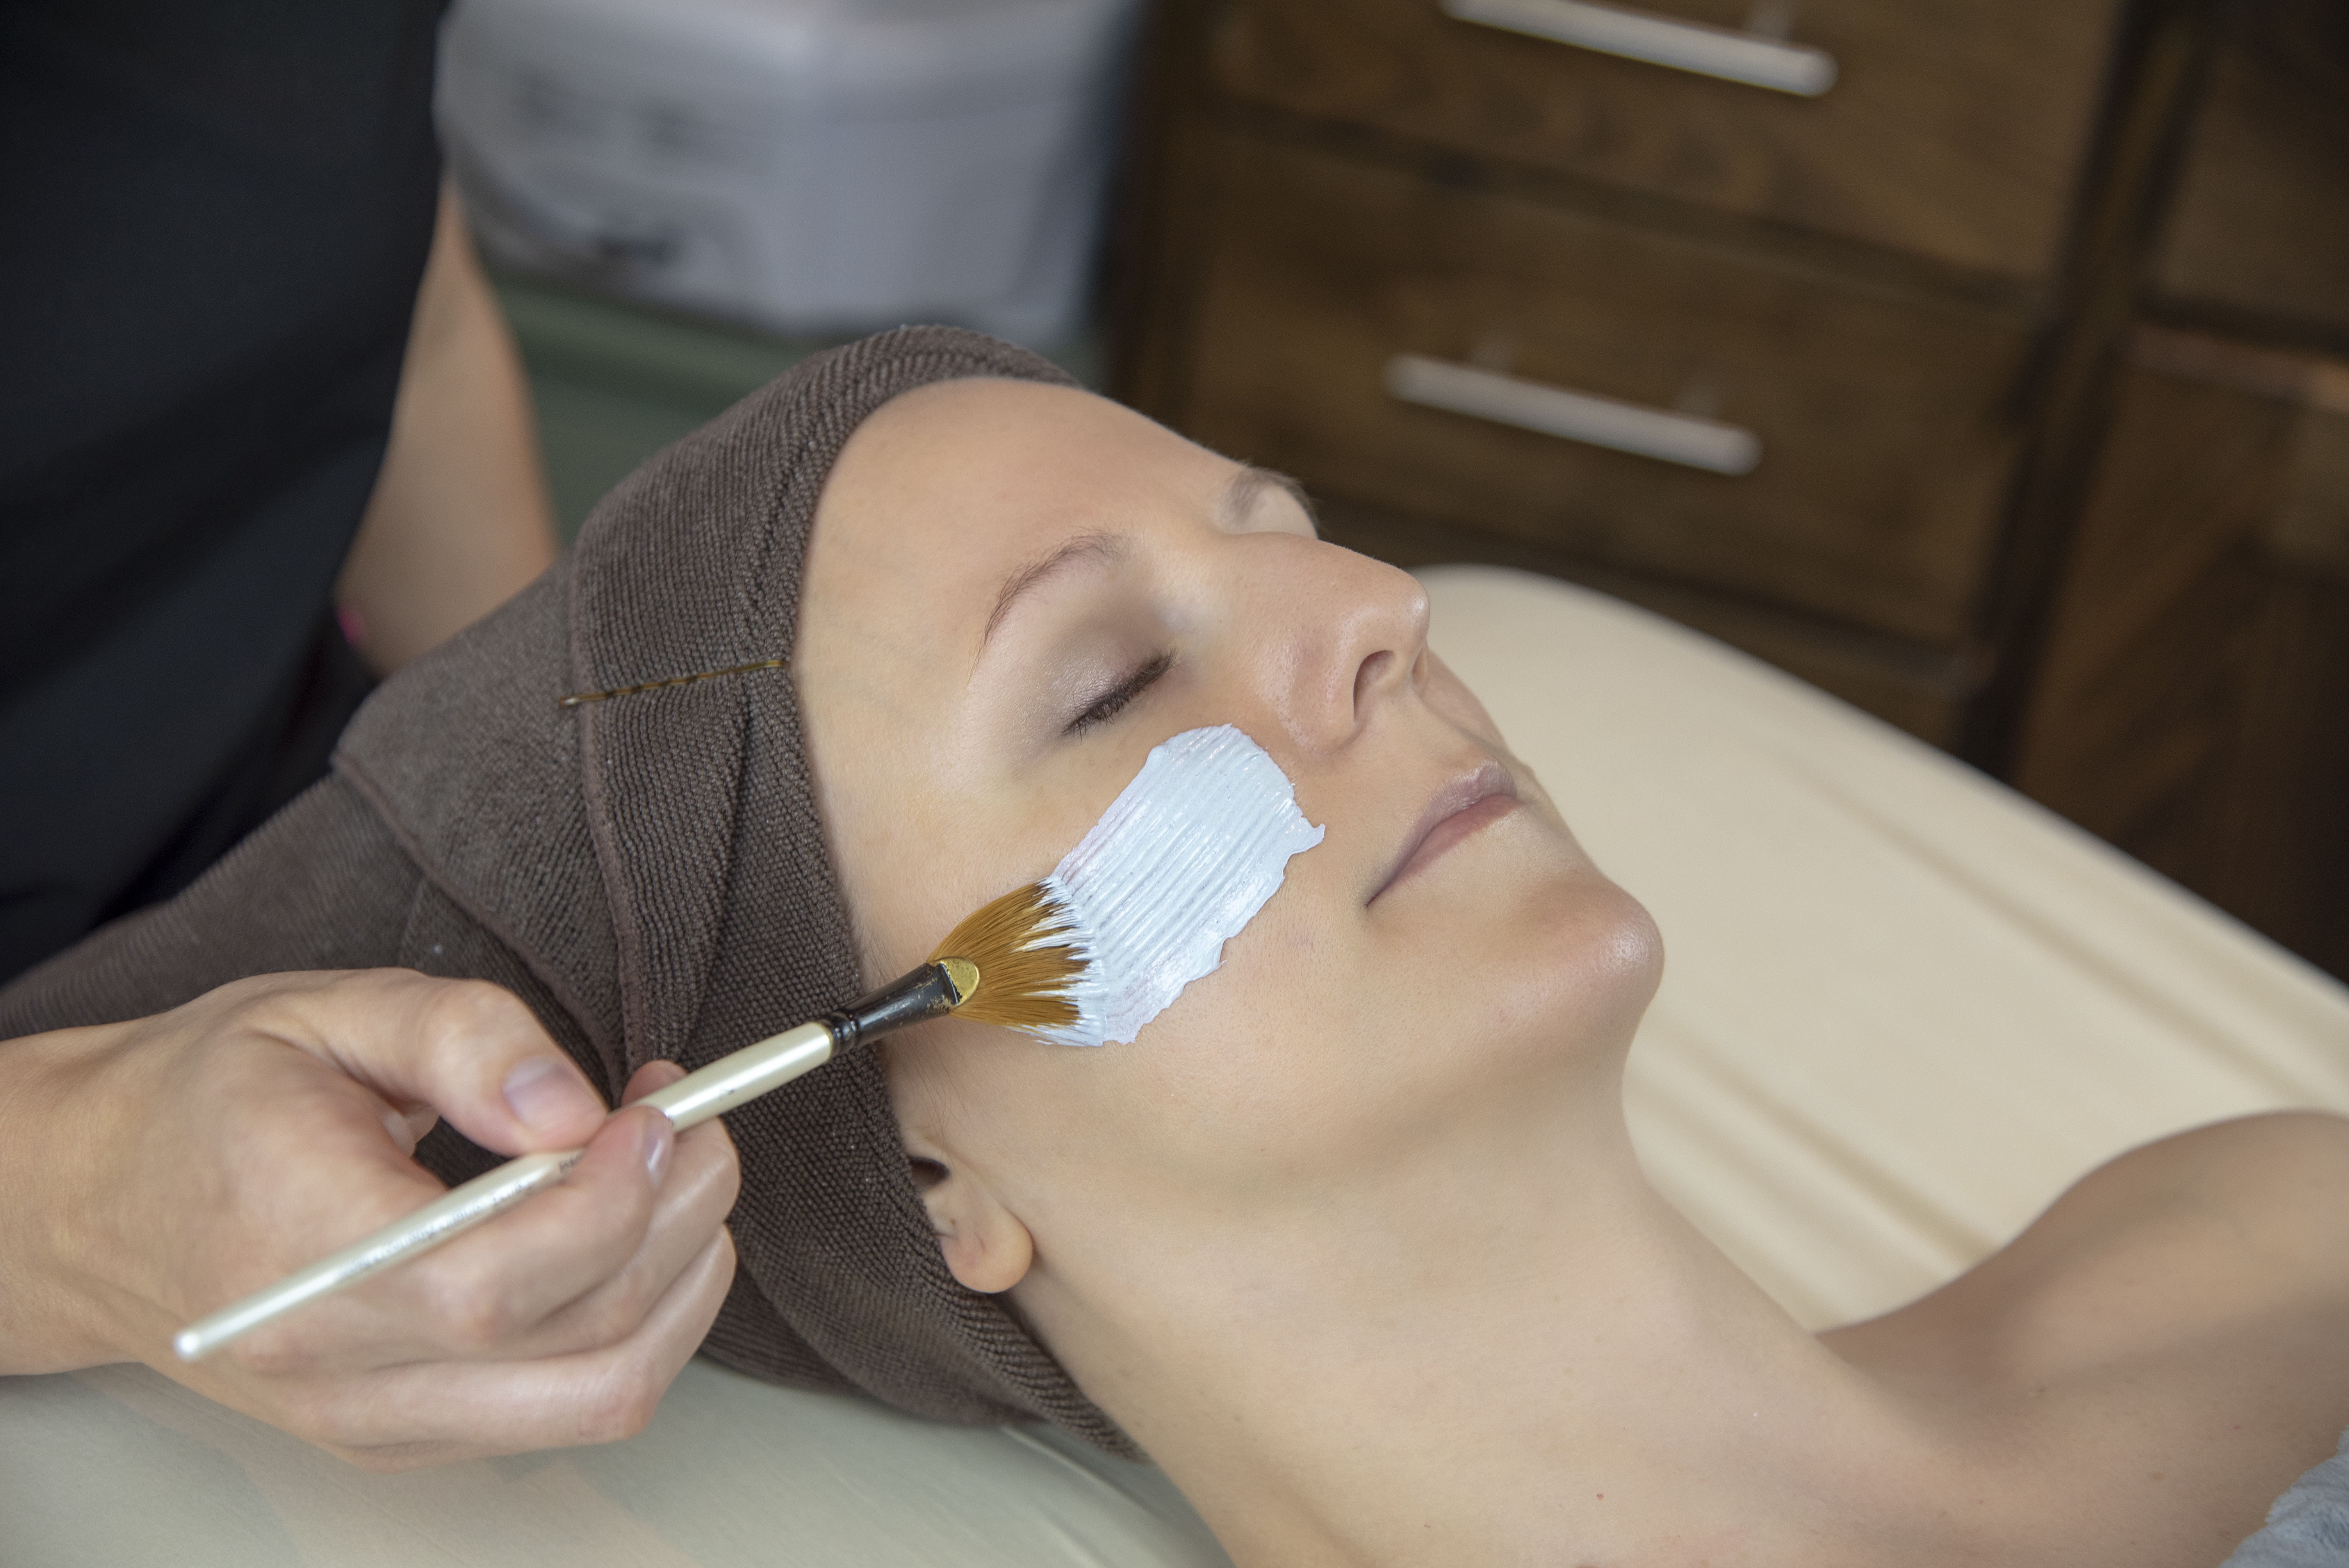 Woman with Head Wrapped in a Towel Getting a Facial